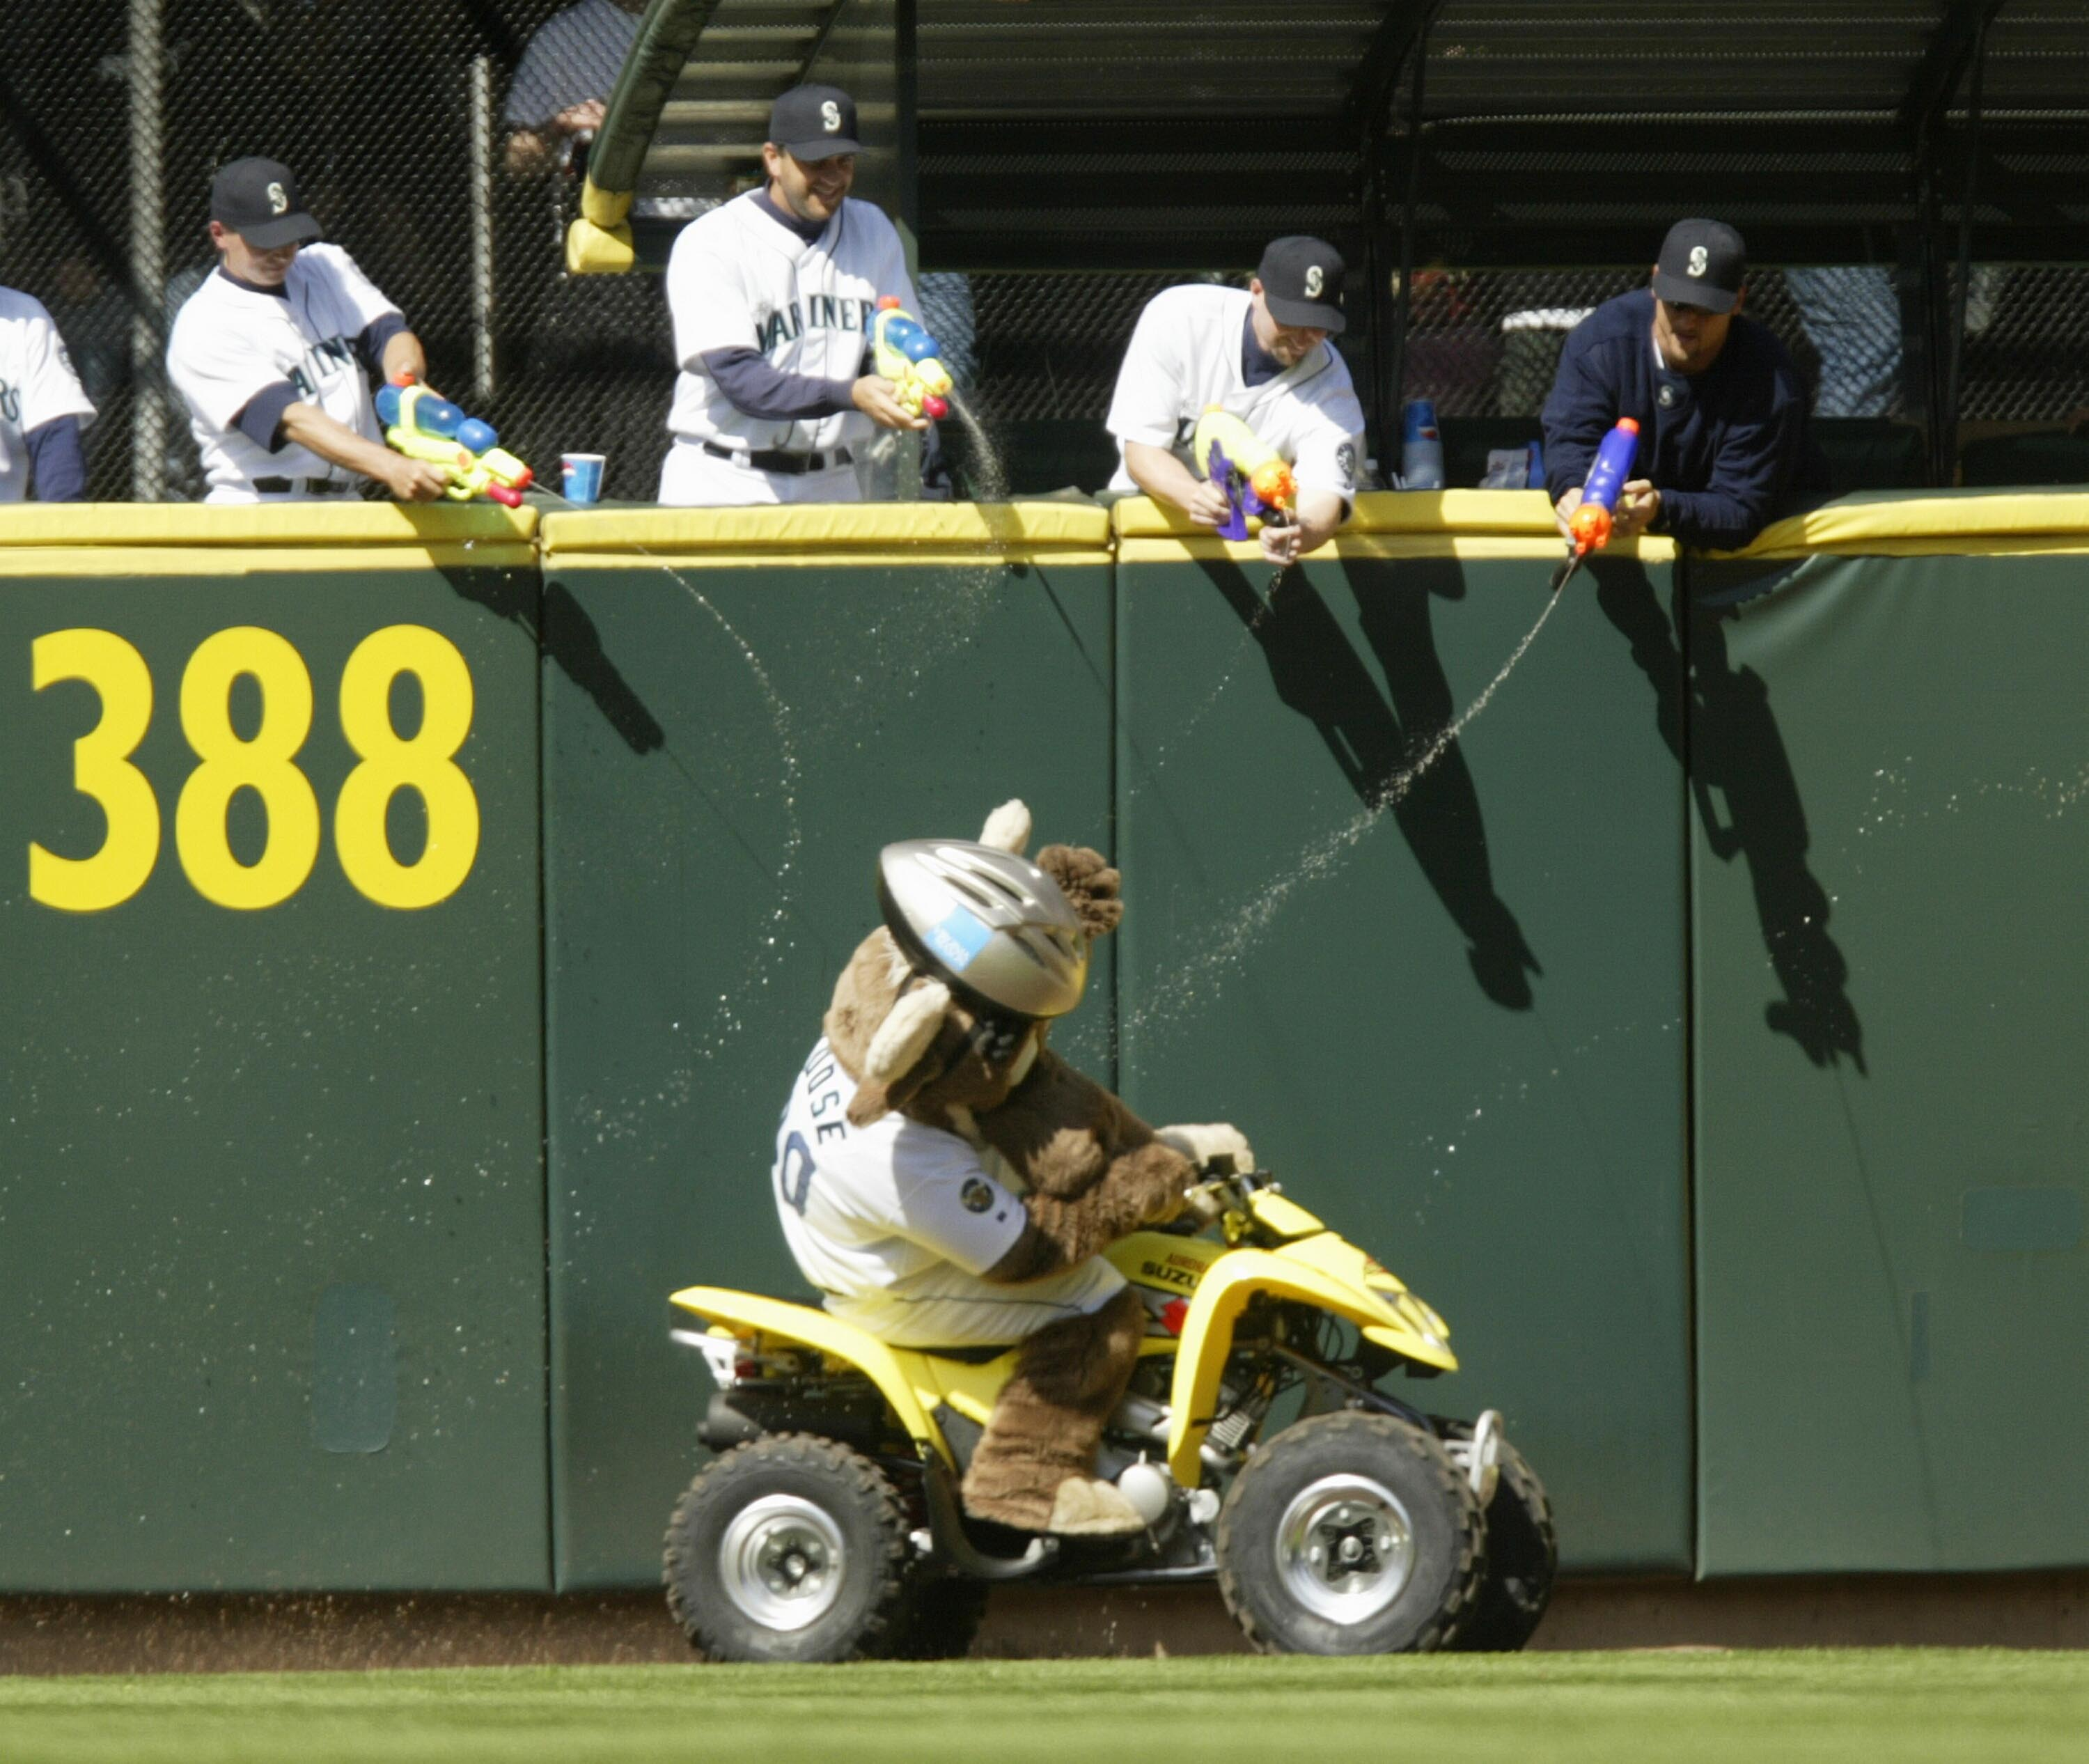 SEATTLE - APRIL 22:  Members of the Seattle Mariners' bullpen, armed with squirt guns, fire upon the team mascot 'Mariner Moose' as he makes his traditional lap around the field during the seventh inning stretch against the Oakland Athletics on April 22,